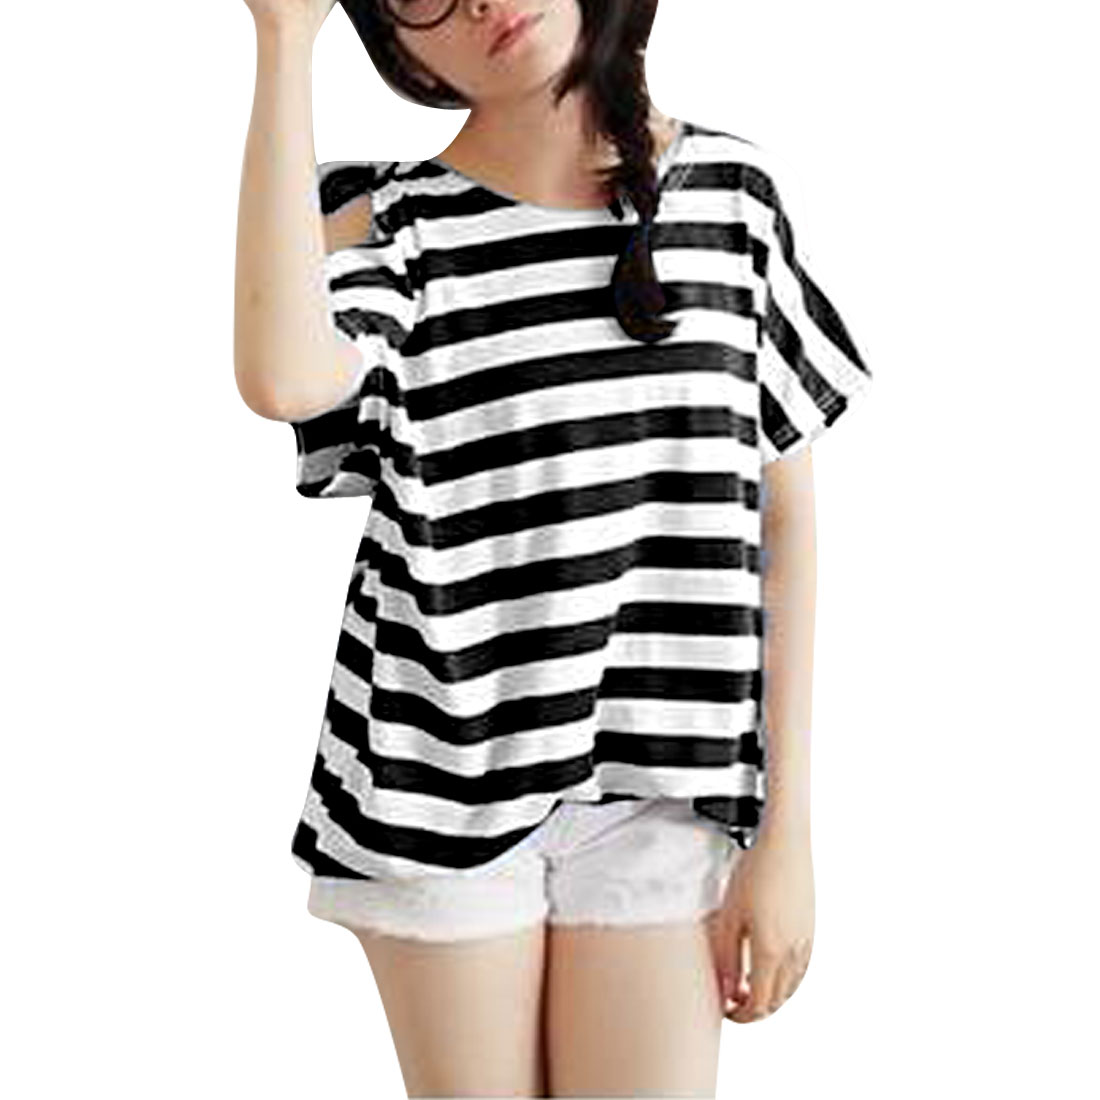 Ladies Short Dolman Sleeve Stripes Pattern Cutout Shoulder Black White Shirt M